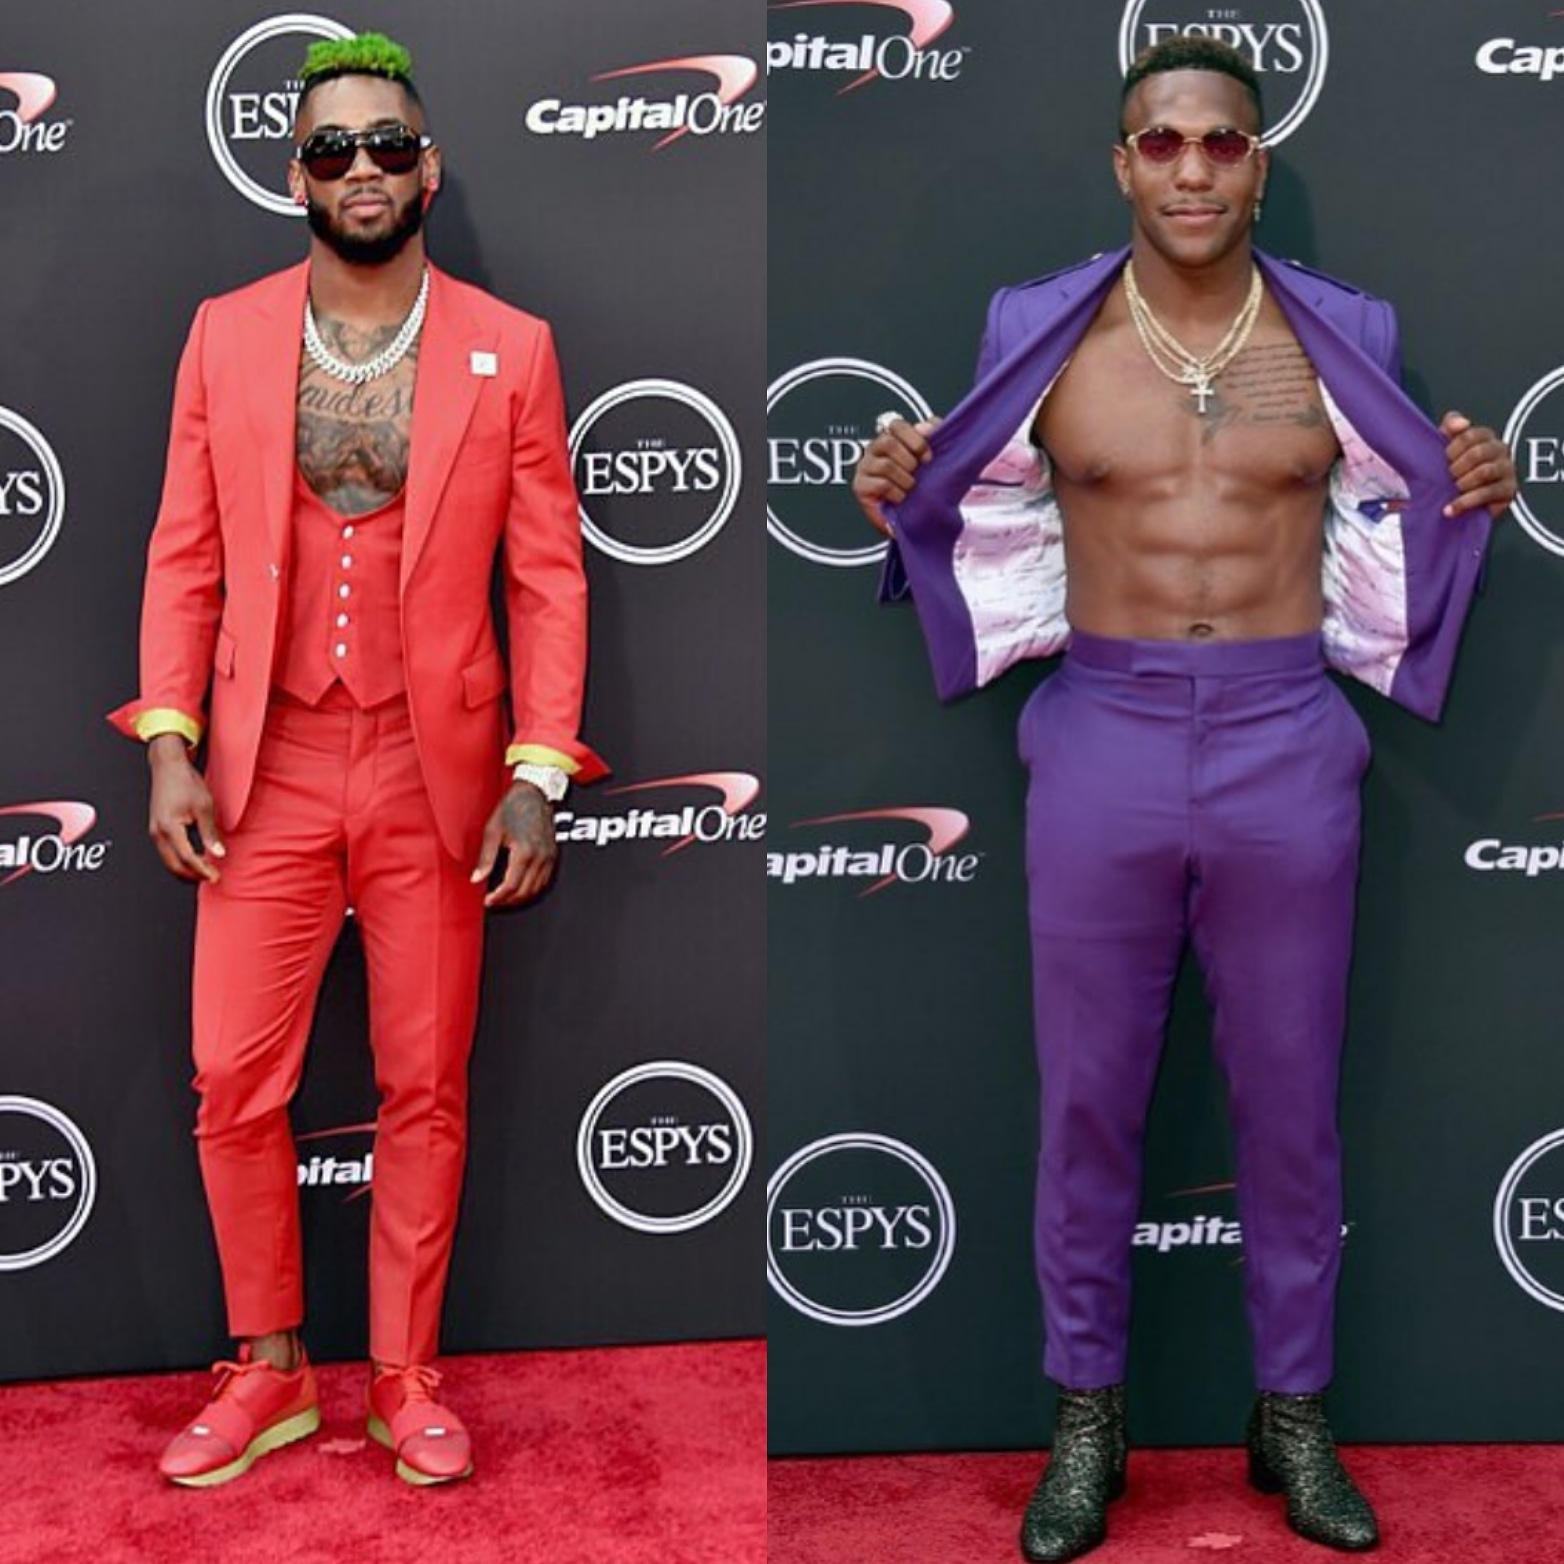 ESPYs 2018: 4 Biggest Fashion Trends